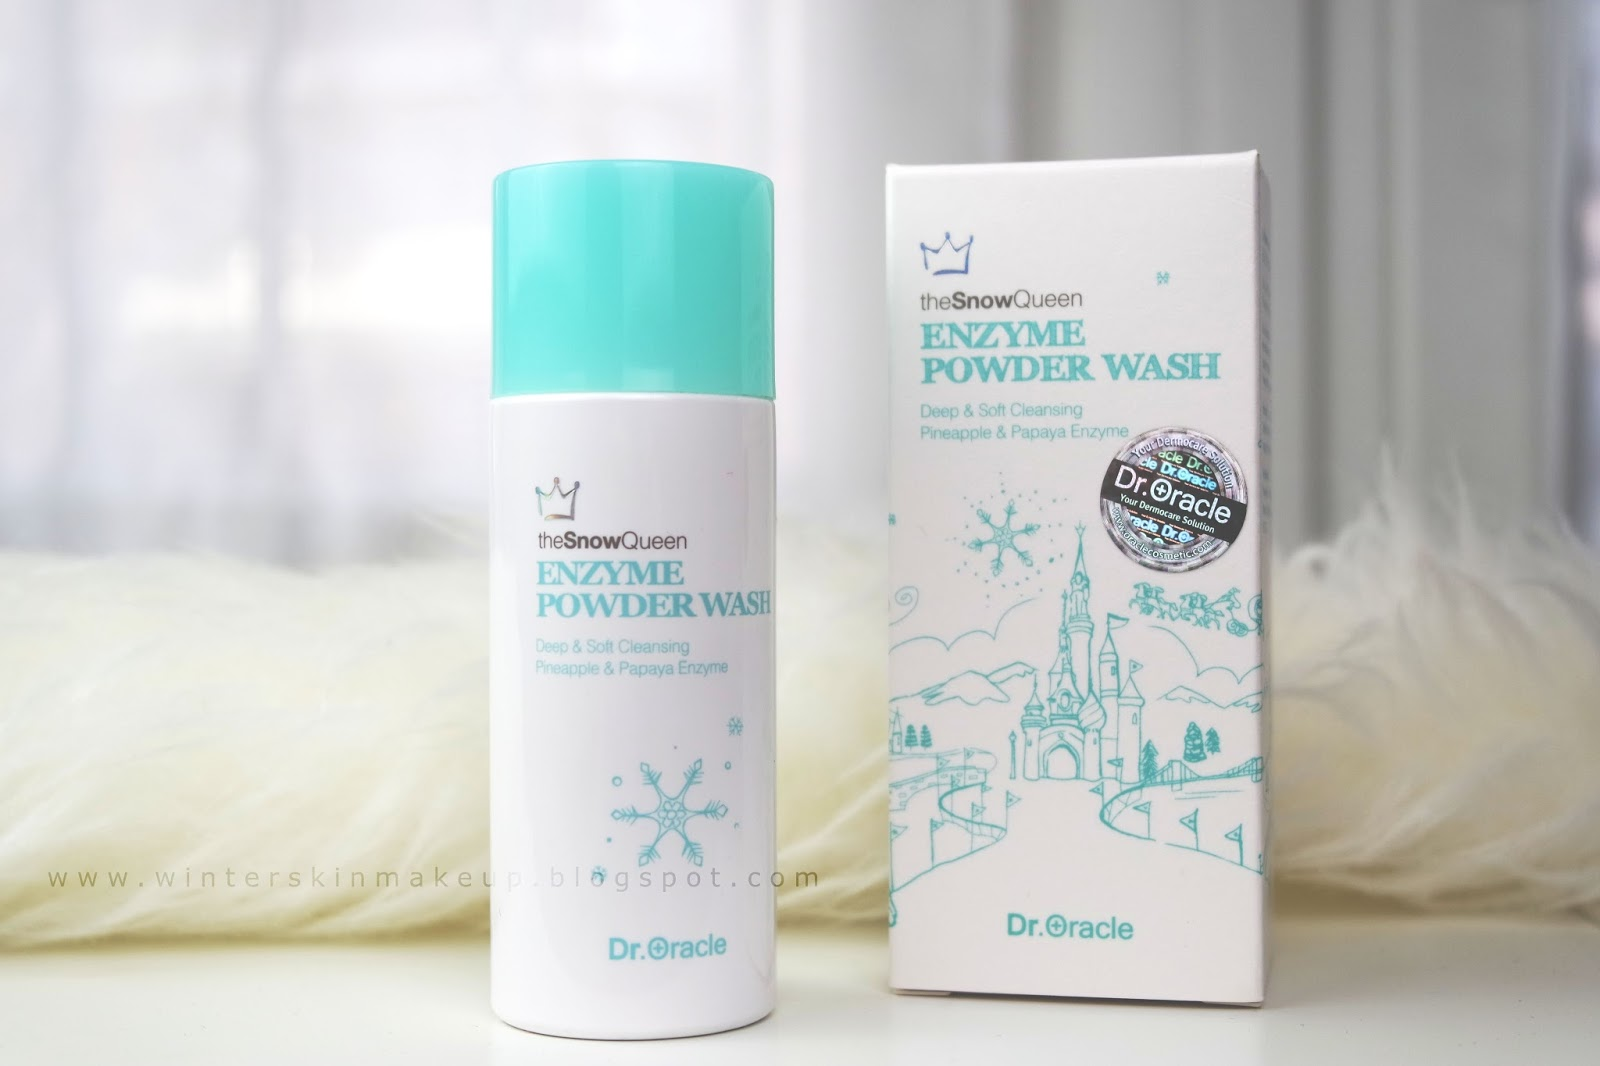 Dr. Oracle Snow Queen Enzyme Powder Wash